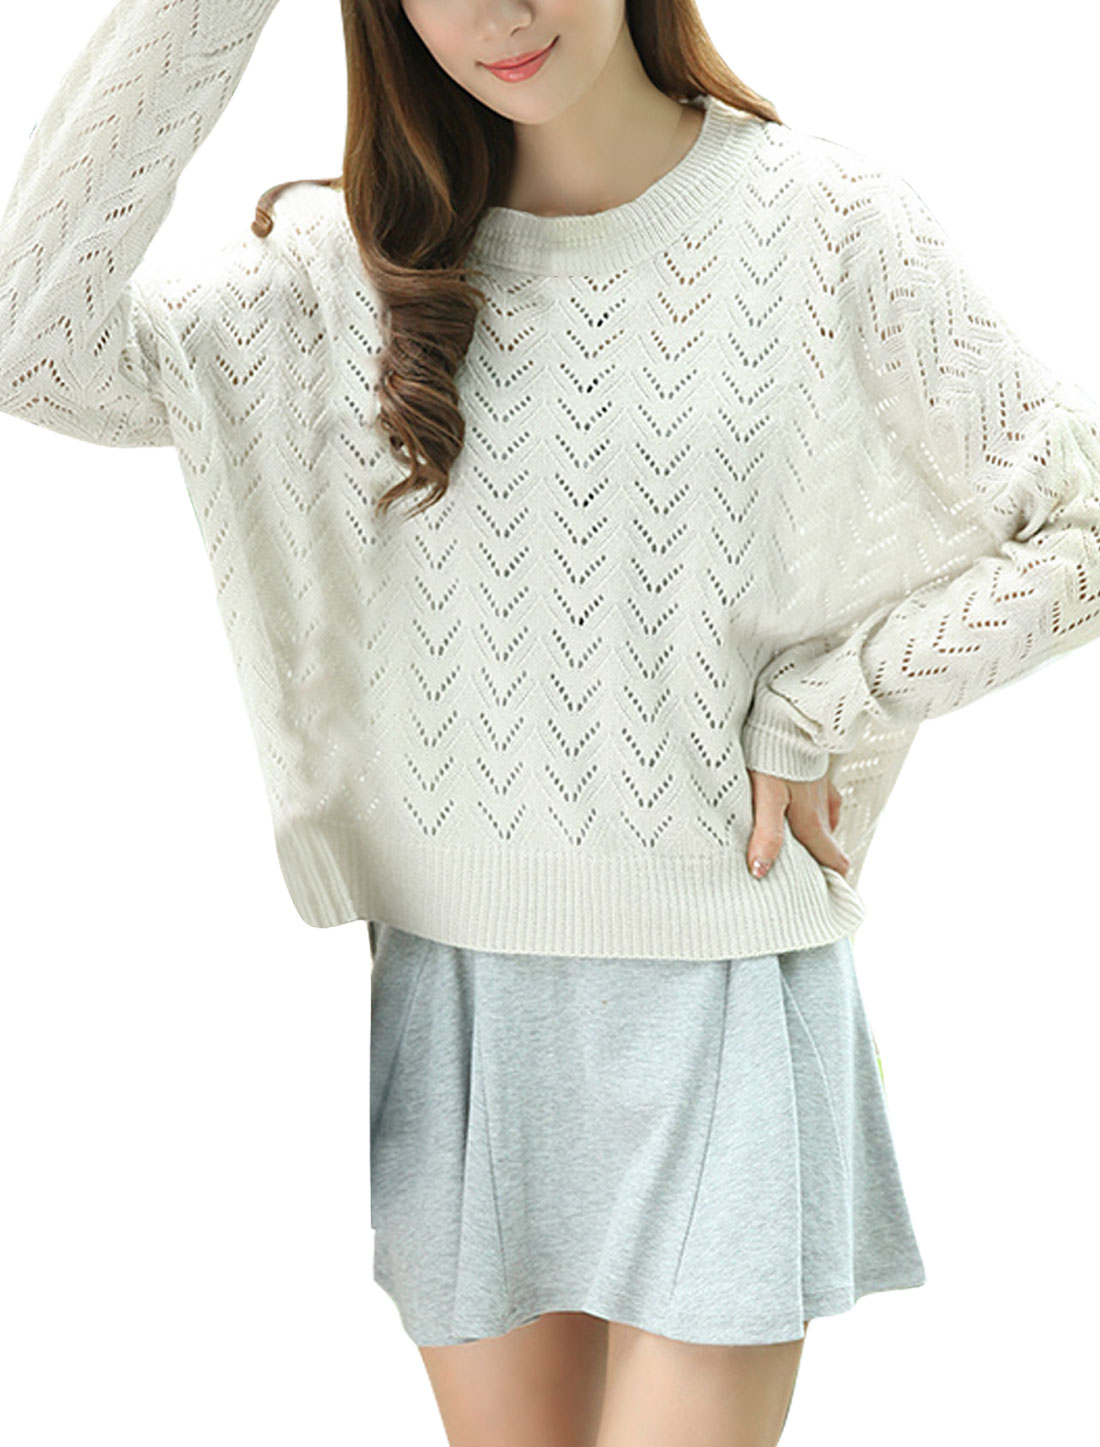 Women XL Beige Hollow Out Design Round Neck Solid Color Pullover Sweater